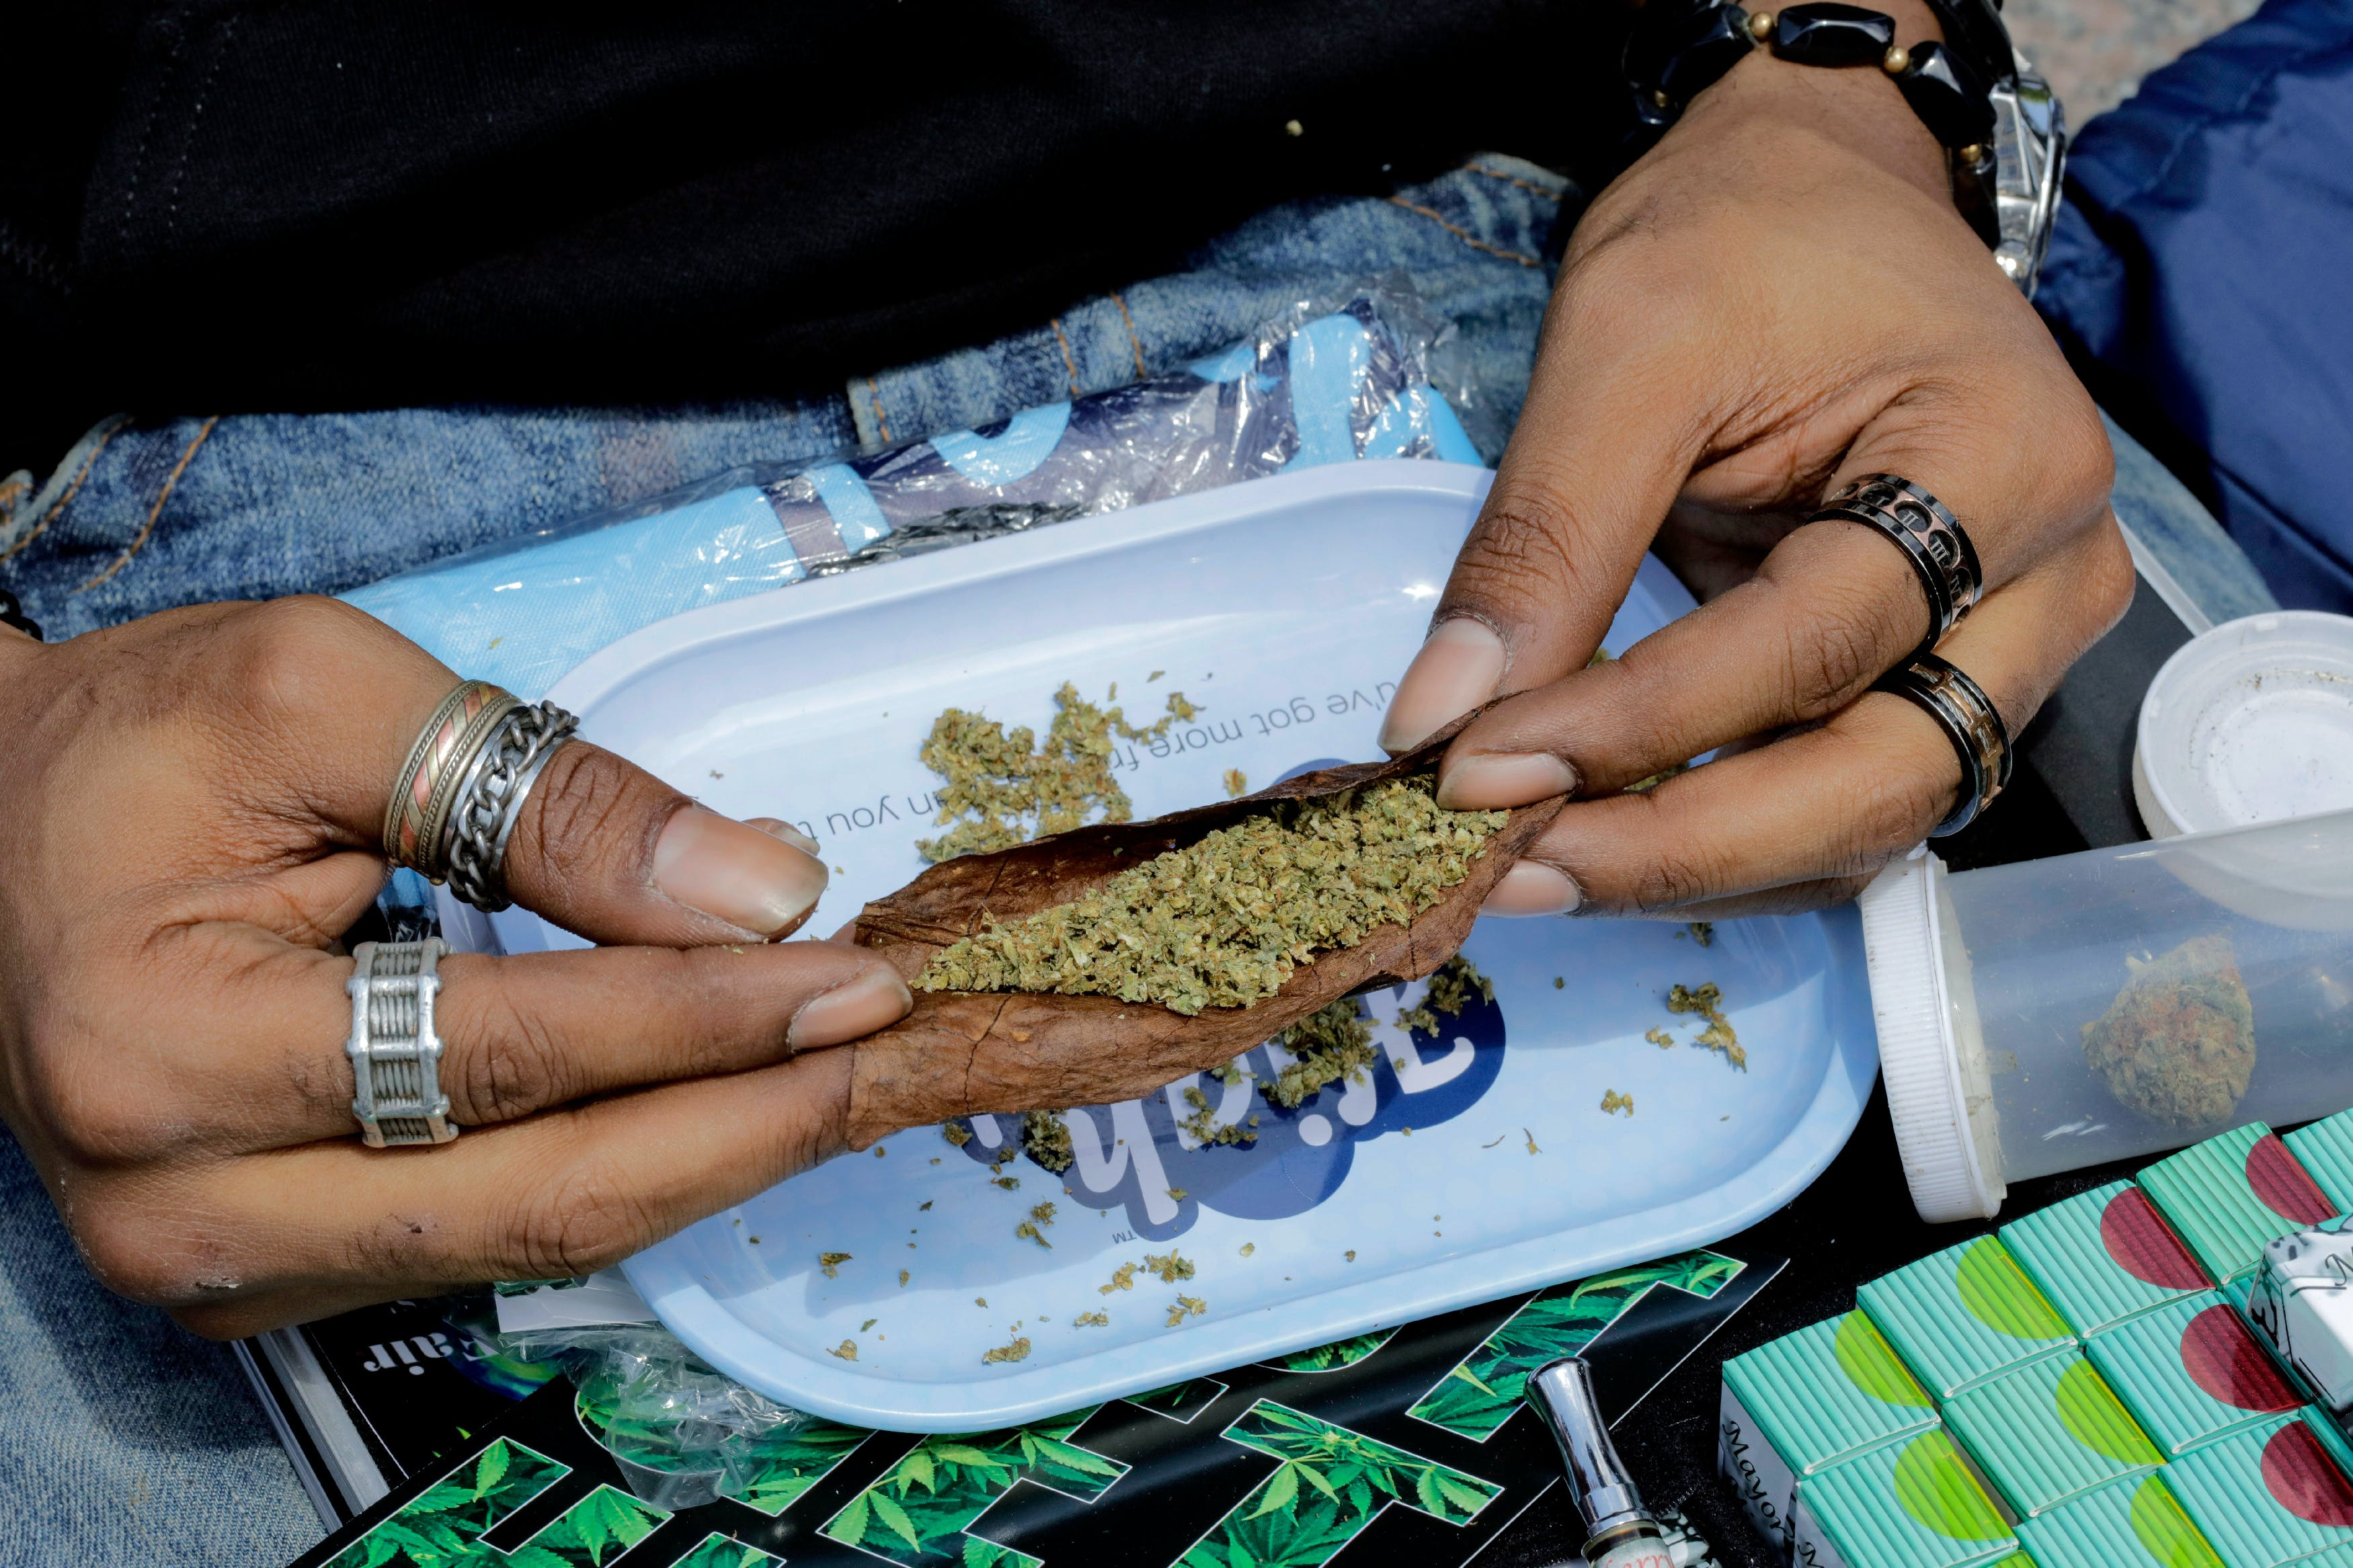 Union Square, New York, USA, May 06 2017 - Hundred of peoples participated on the annual NYC Cannabis Parade & Rally in support of the legalization of the herb for recreational and medical use today in New York City. Photo by: Luiz Rampelotto/EuropaNewswire/picture-alliance/dpa/AP Images